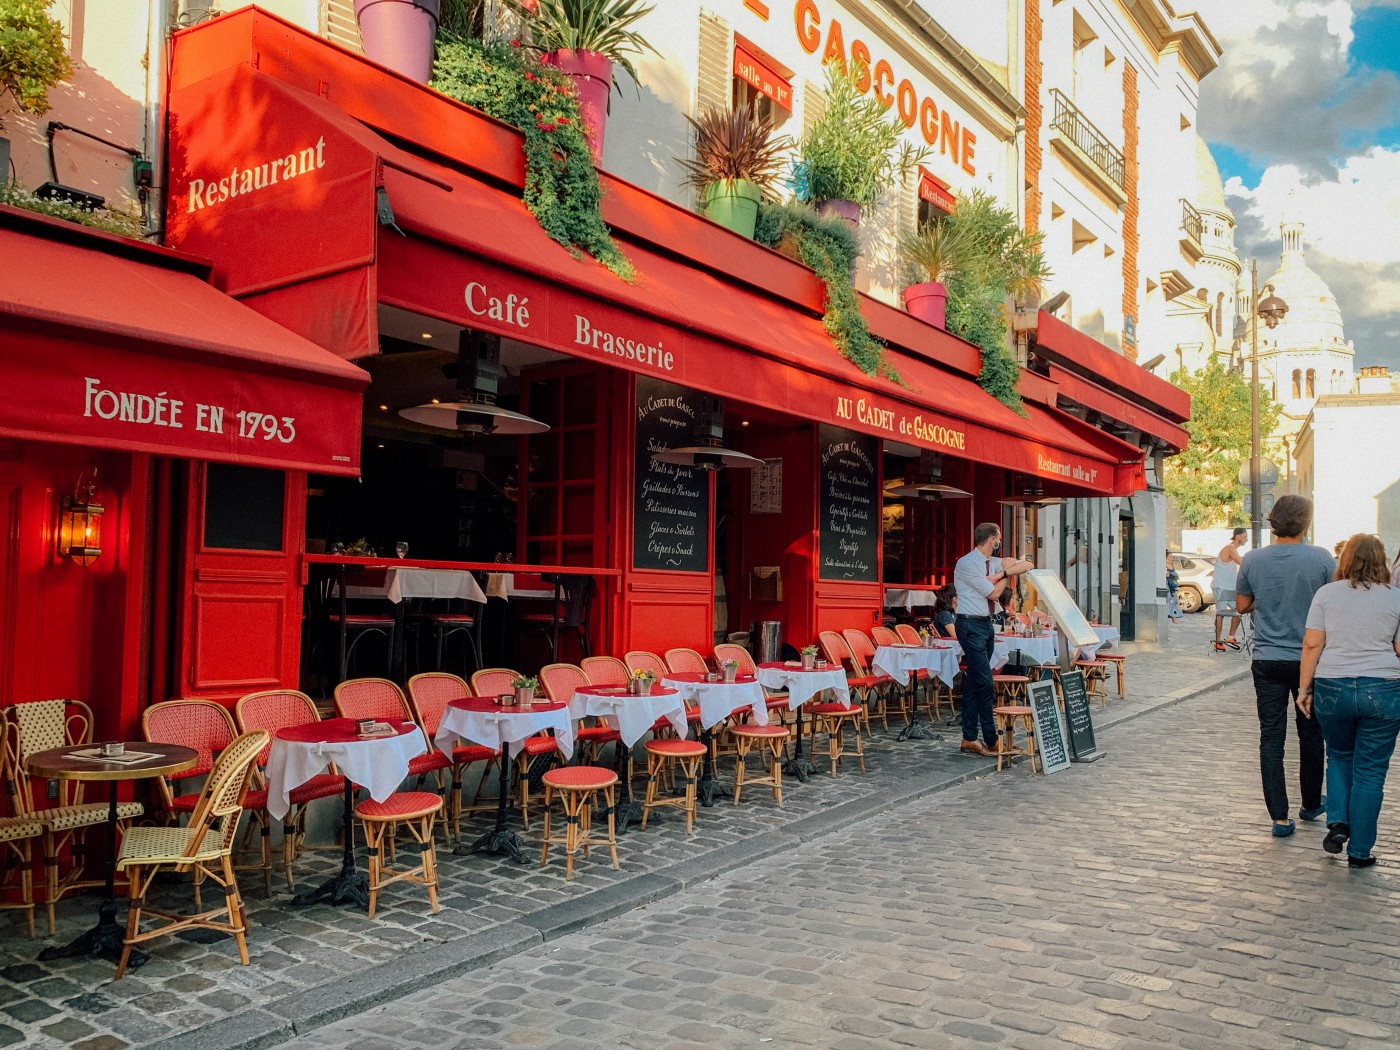 A cafe in Paris with a bright-red awning and exterior, seen from the street.